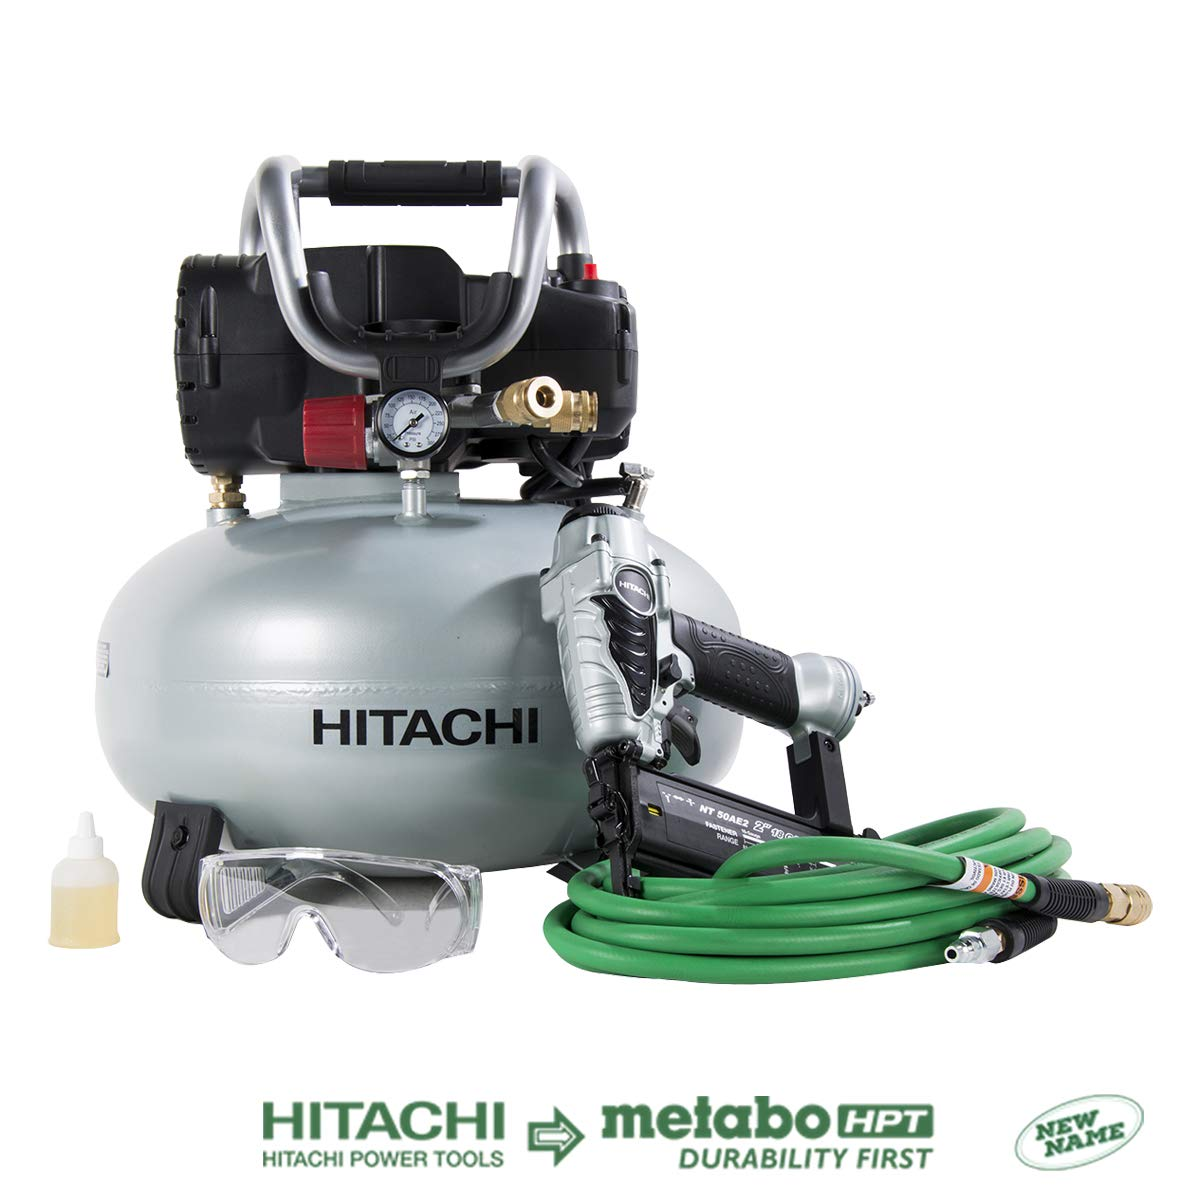 Hitachi KNT50AB Brad Nailer and Compressor Combo Kit, 6 Gallon Pancake Air Tank, 5 8 to 2 Brad Nails, Includes 25 Air Hose Discontinued by the Manufacturer